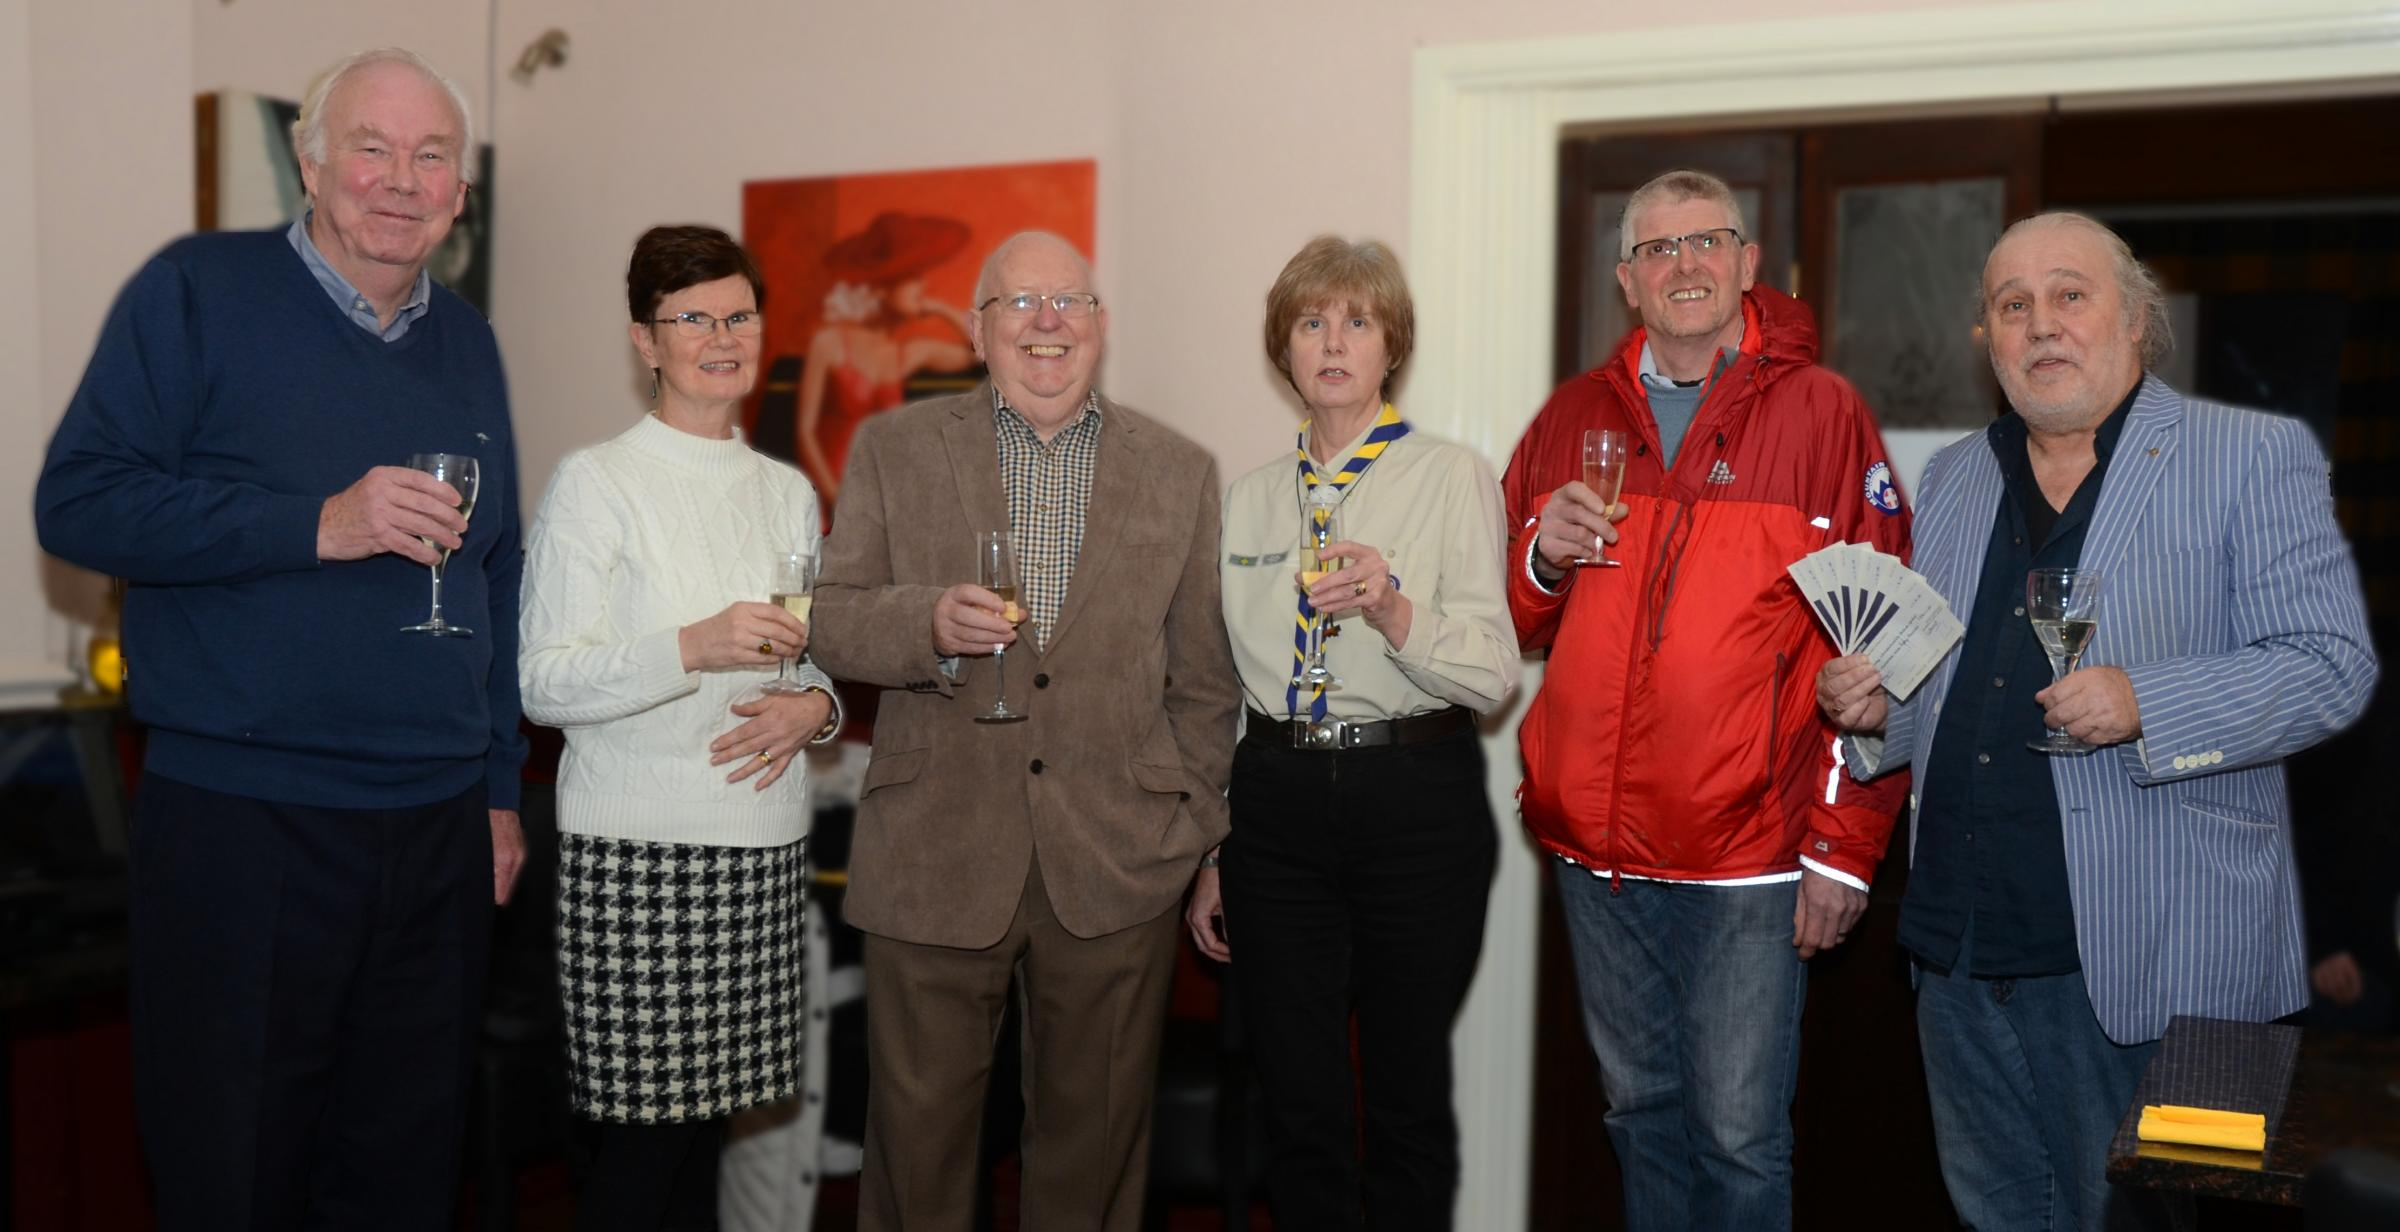 (Left to right) Ilkley Wharfedale Rotary Club President Tony Kendall with Mary Hamilton (CABAD), David Carlton (The Beamsley Project), Judith Dickinson (Ilkley Christchurch Scouts), Stuart Benson (Upper Wharfedale Fell Rescue Association), and Rotarian Pe